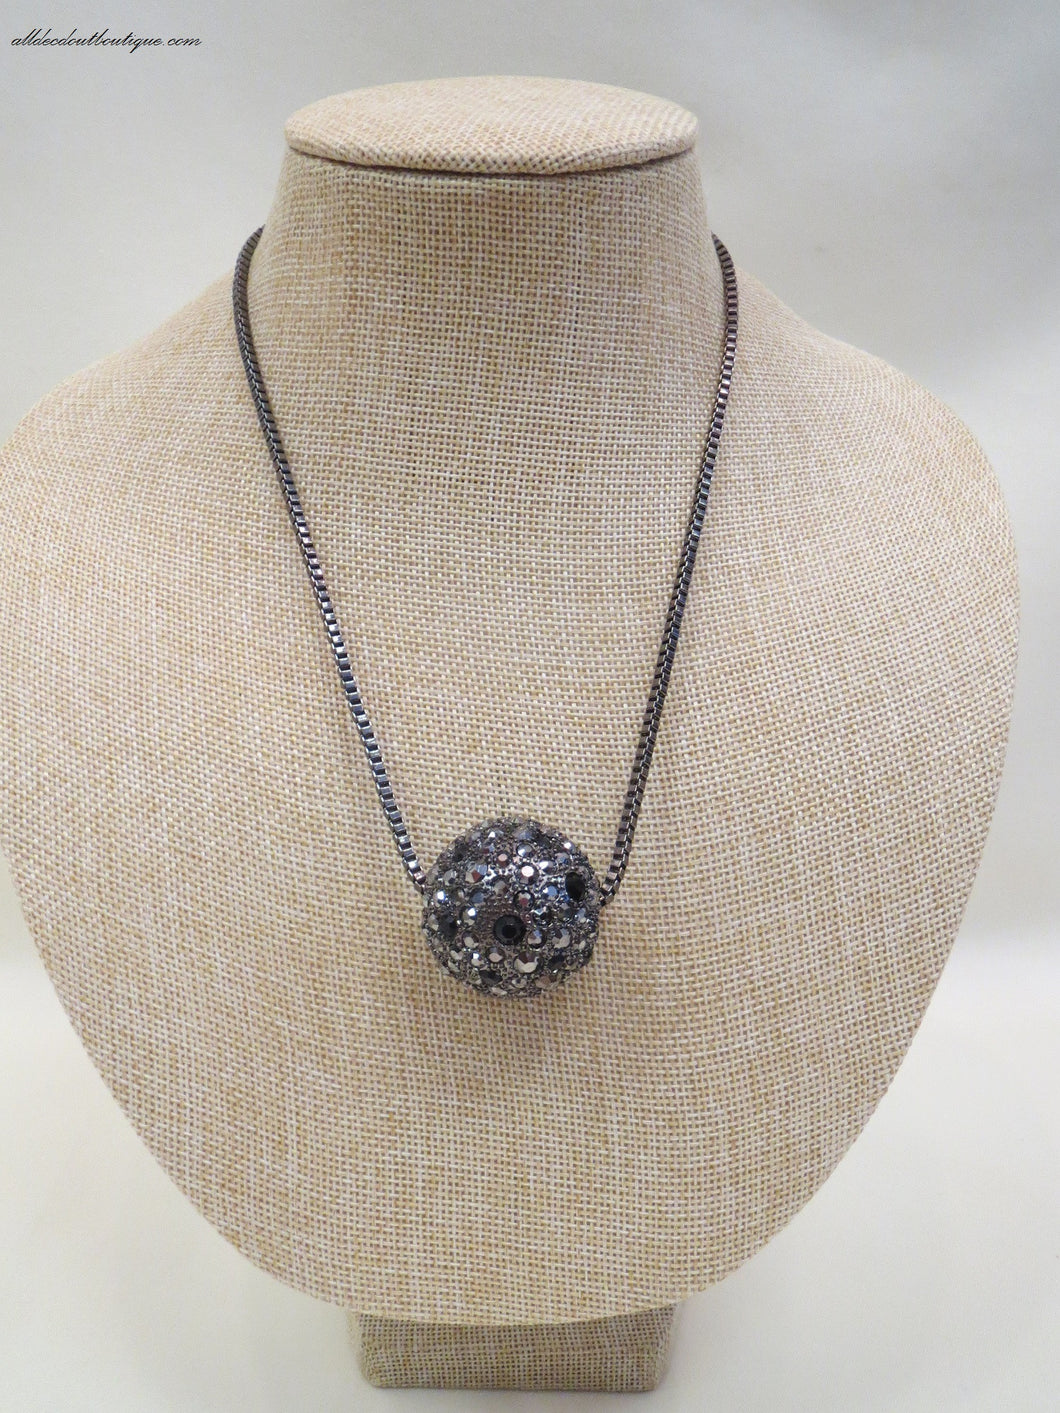 ADO | Grey/Black Necklace with Pendant - All Decd Out